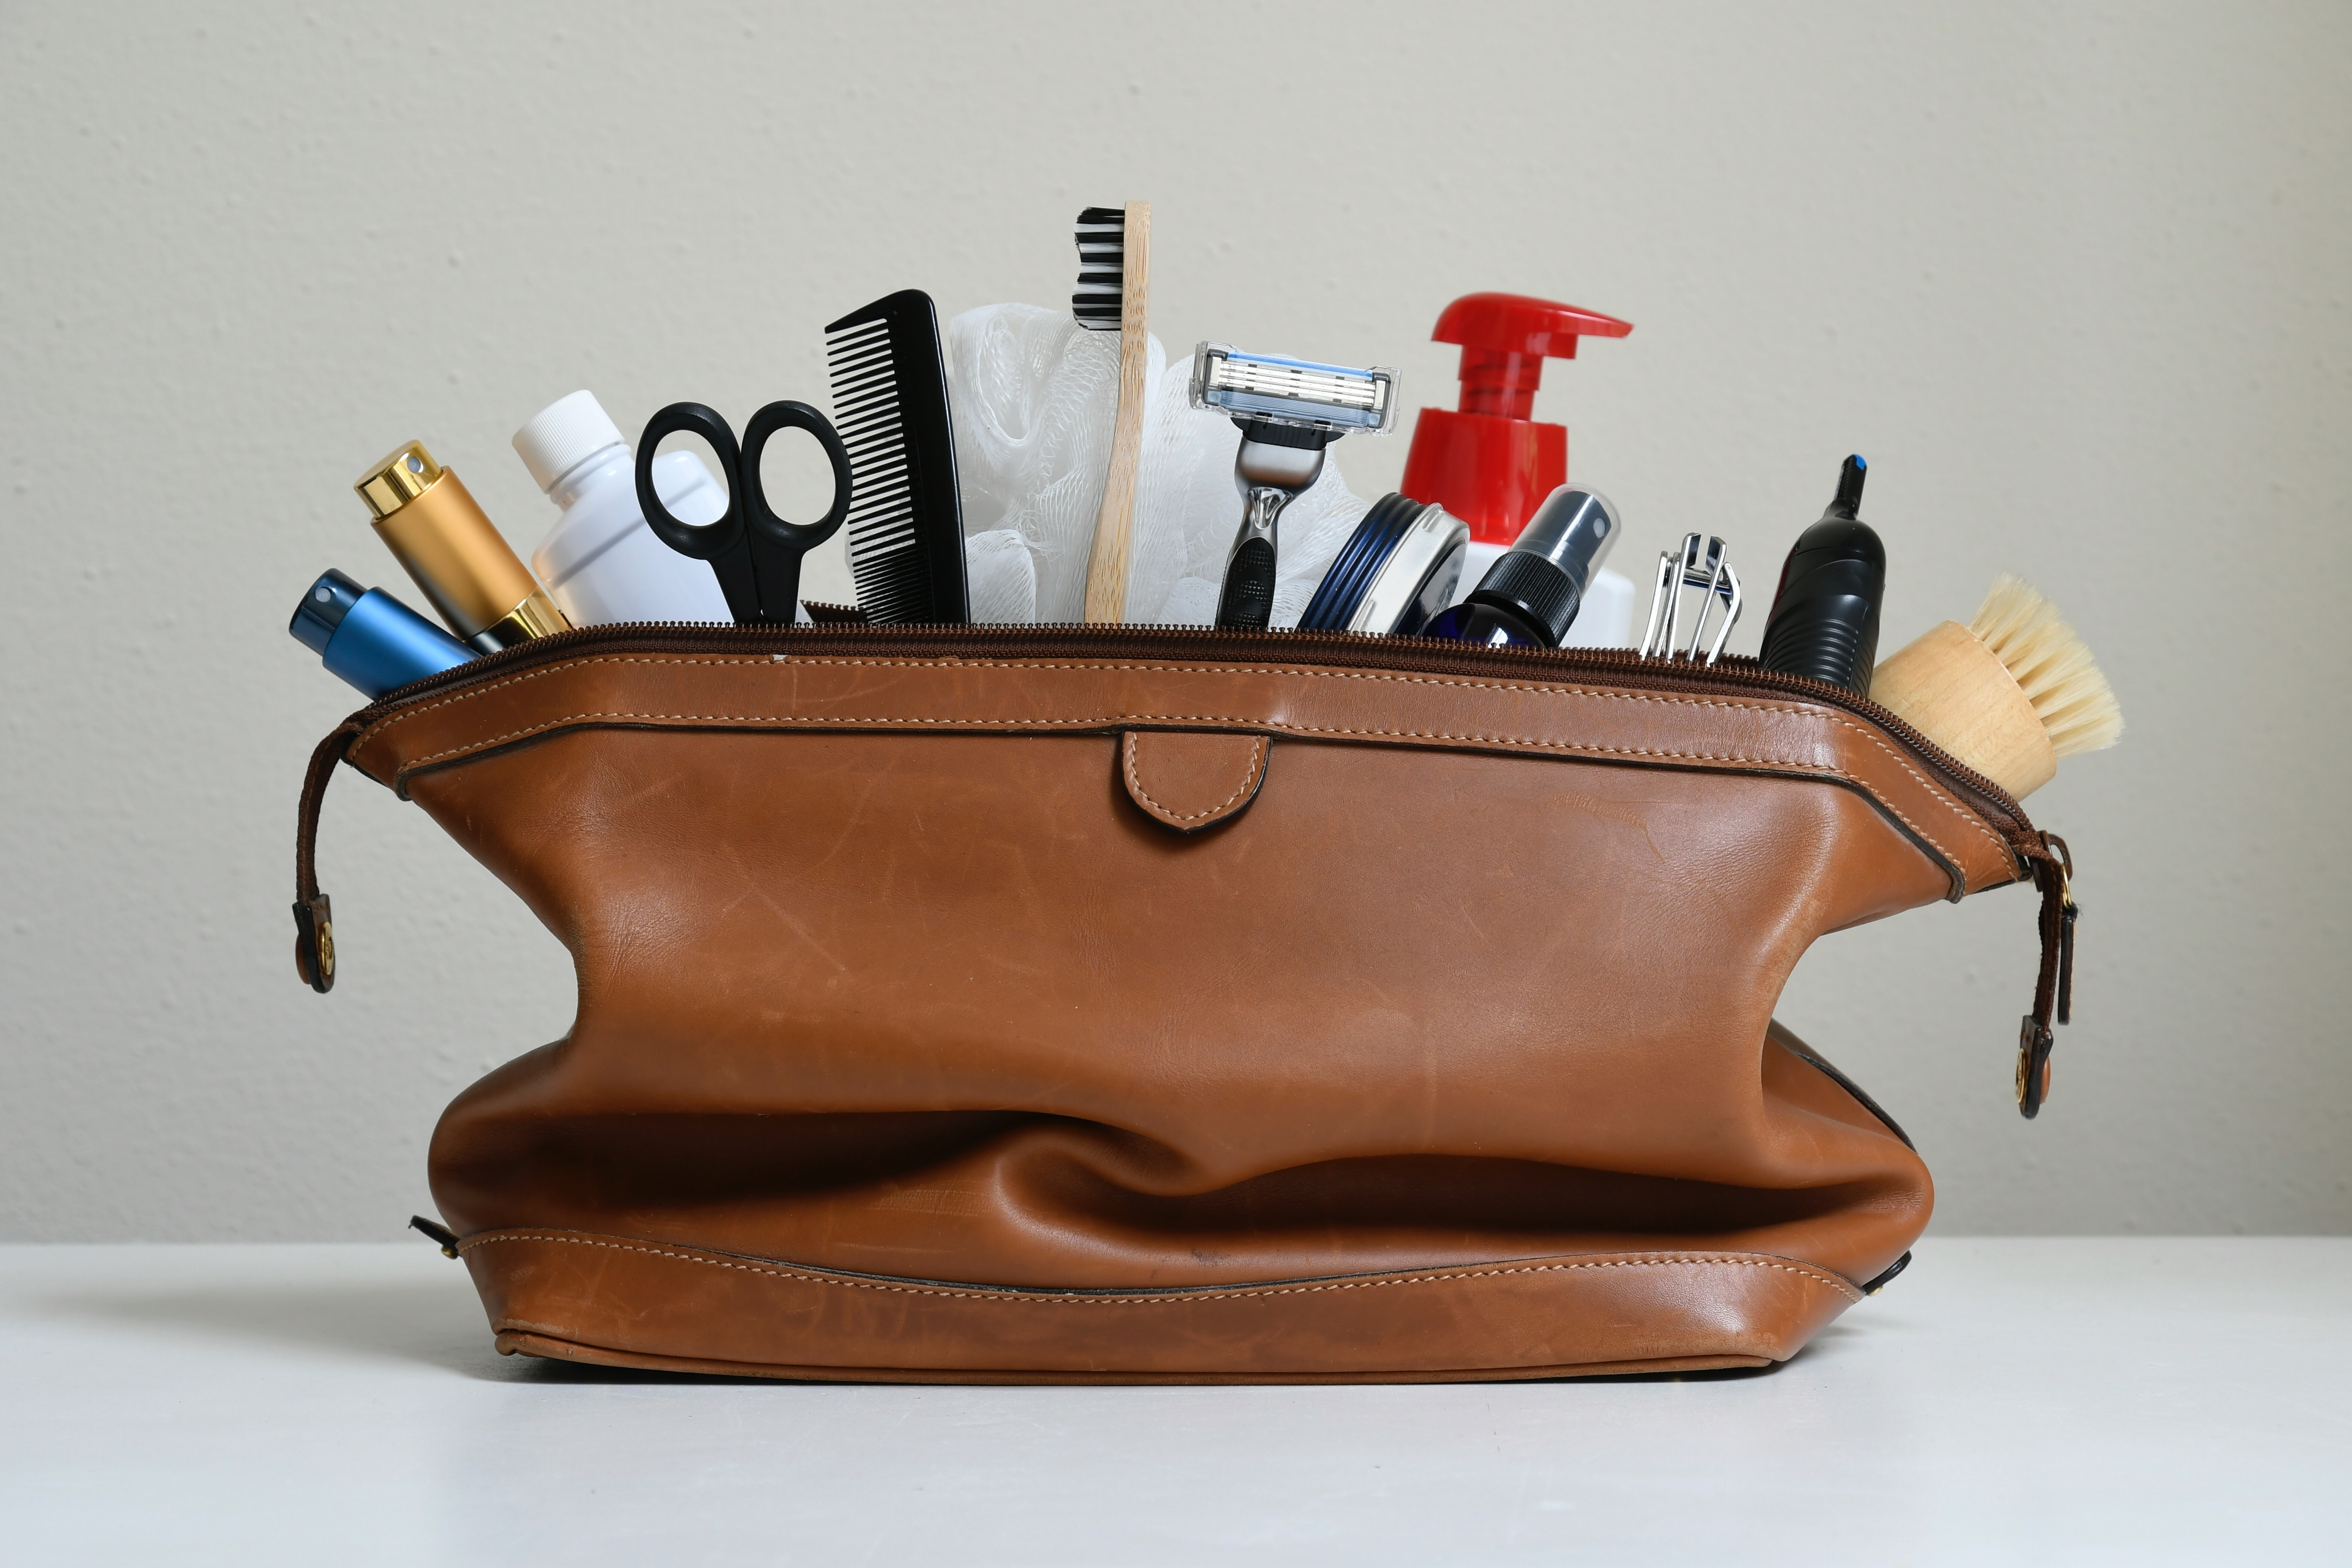 Travel toiletries in a brown travel bag.